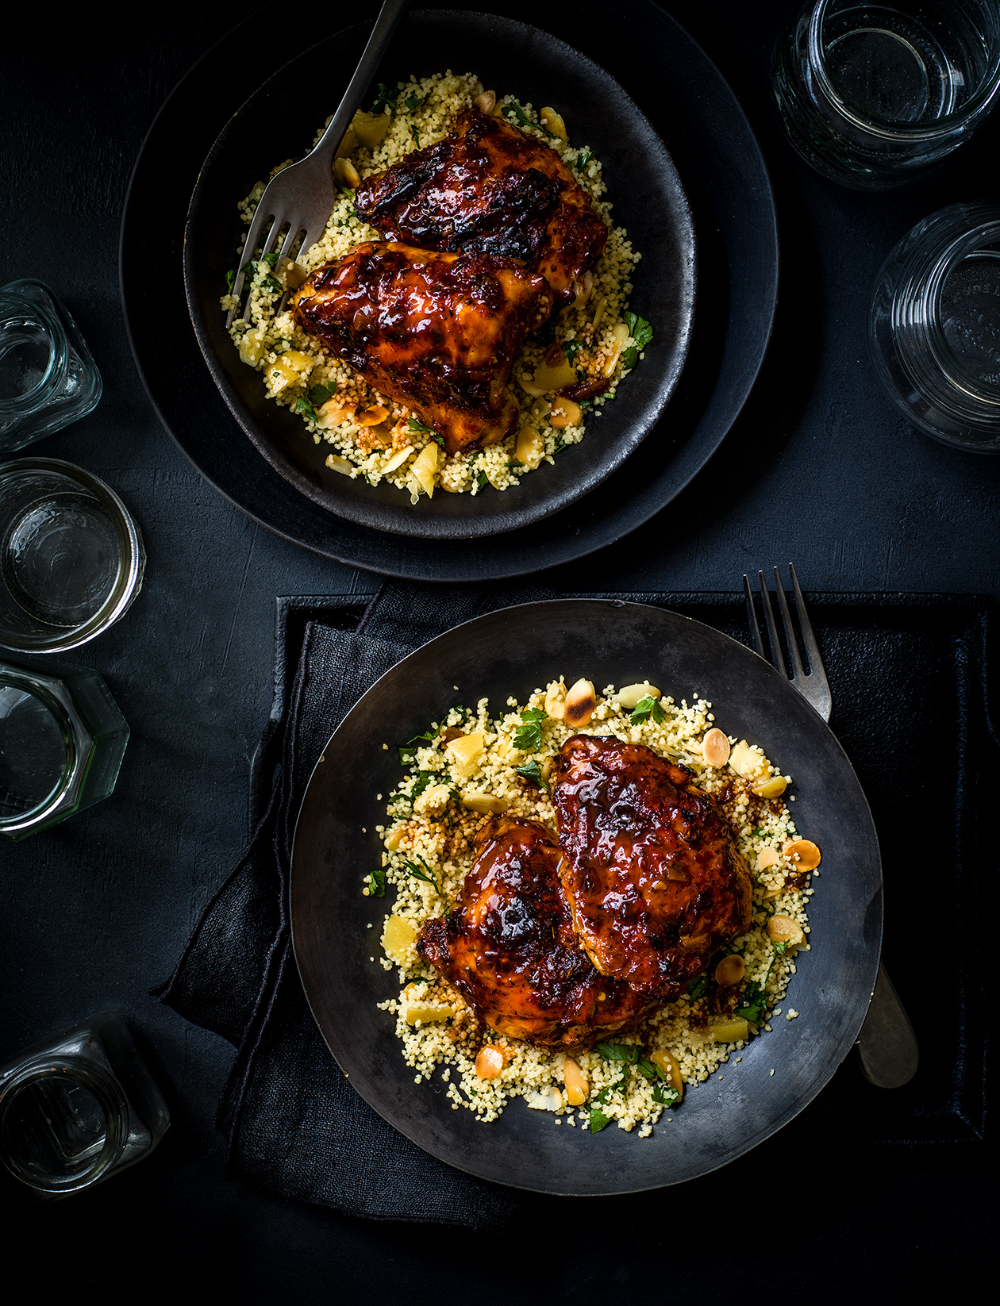 Photo of Sticky harissa and marmalade-baked chicken recipe